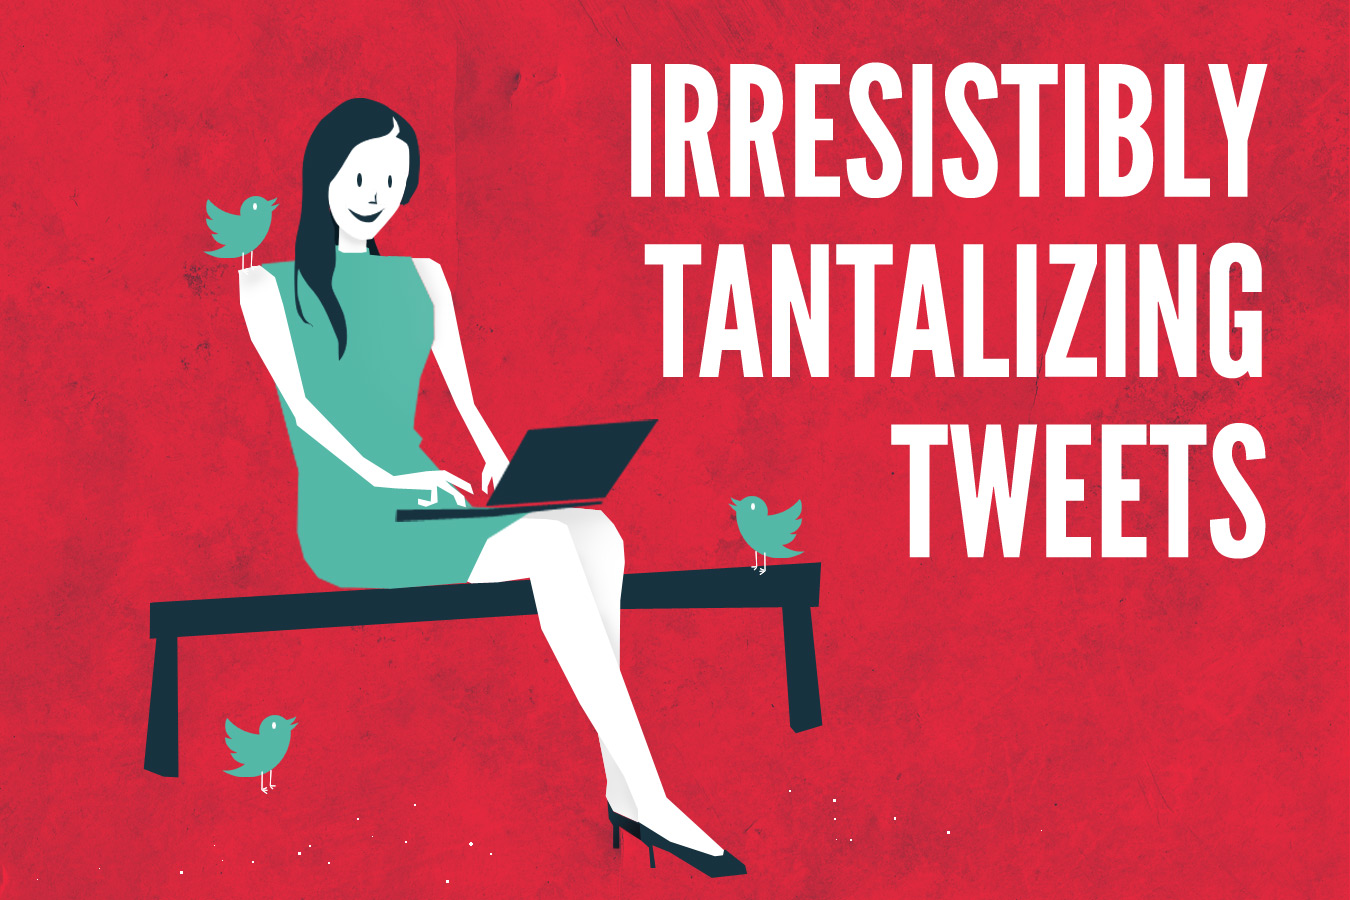 How To Write Irresistibly Tantalizing Tweets